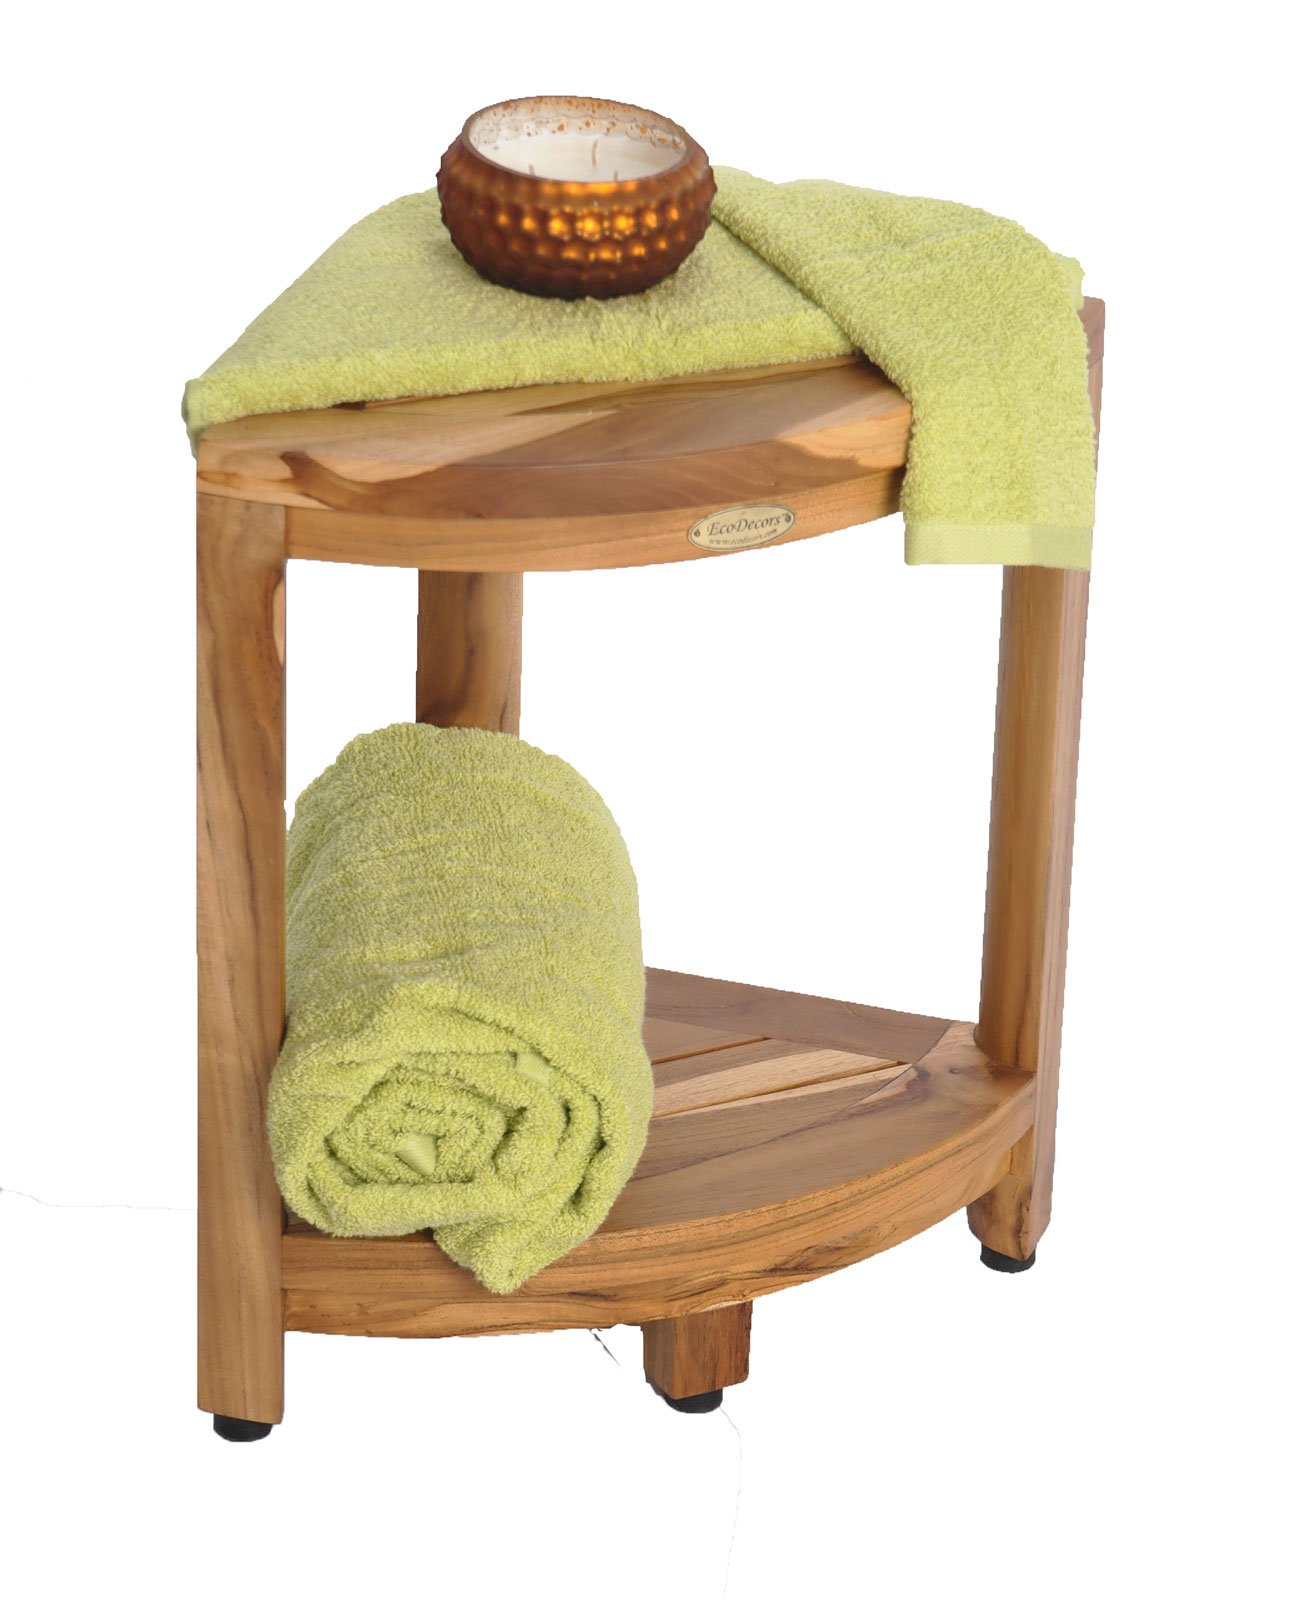 New- EcoDecors EarthyTeak™ FULLY ASSEMBLED 2-Tier Compact Teak Corner Shower Foot Stool With Shelf- Shower Storage, Shaving Foot Rest by EcoDecors (Image #2)